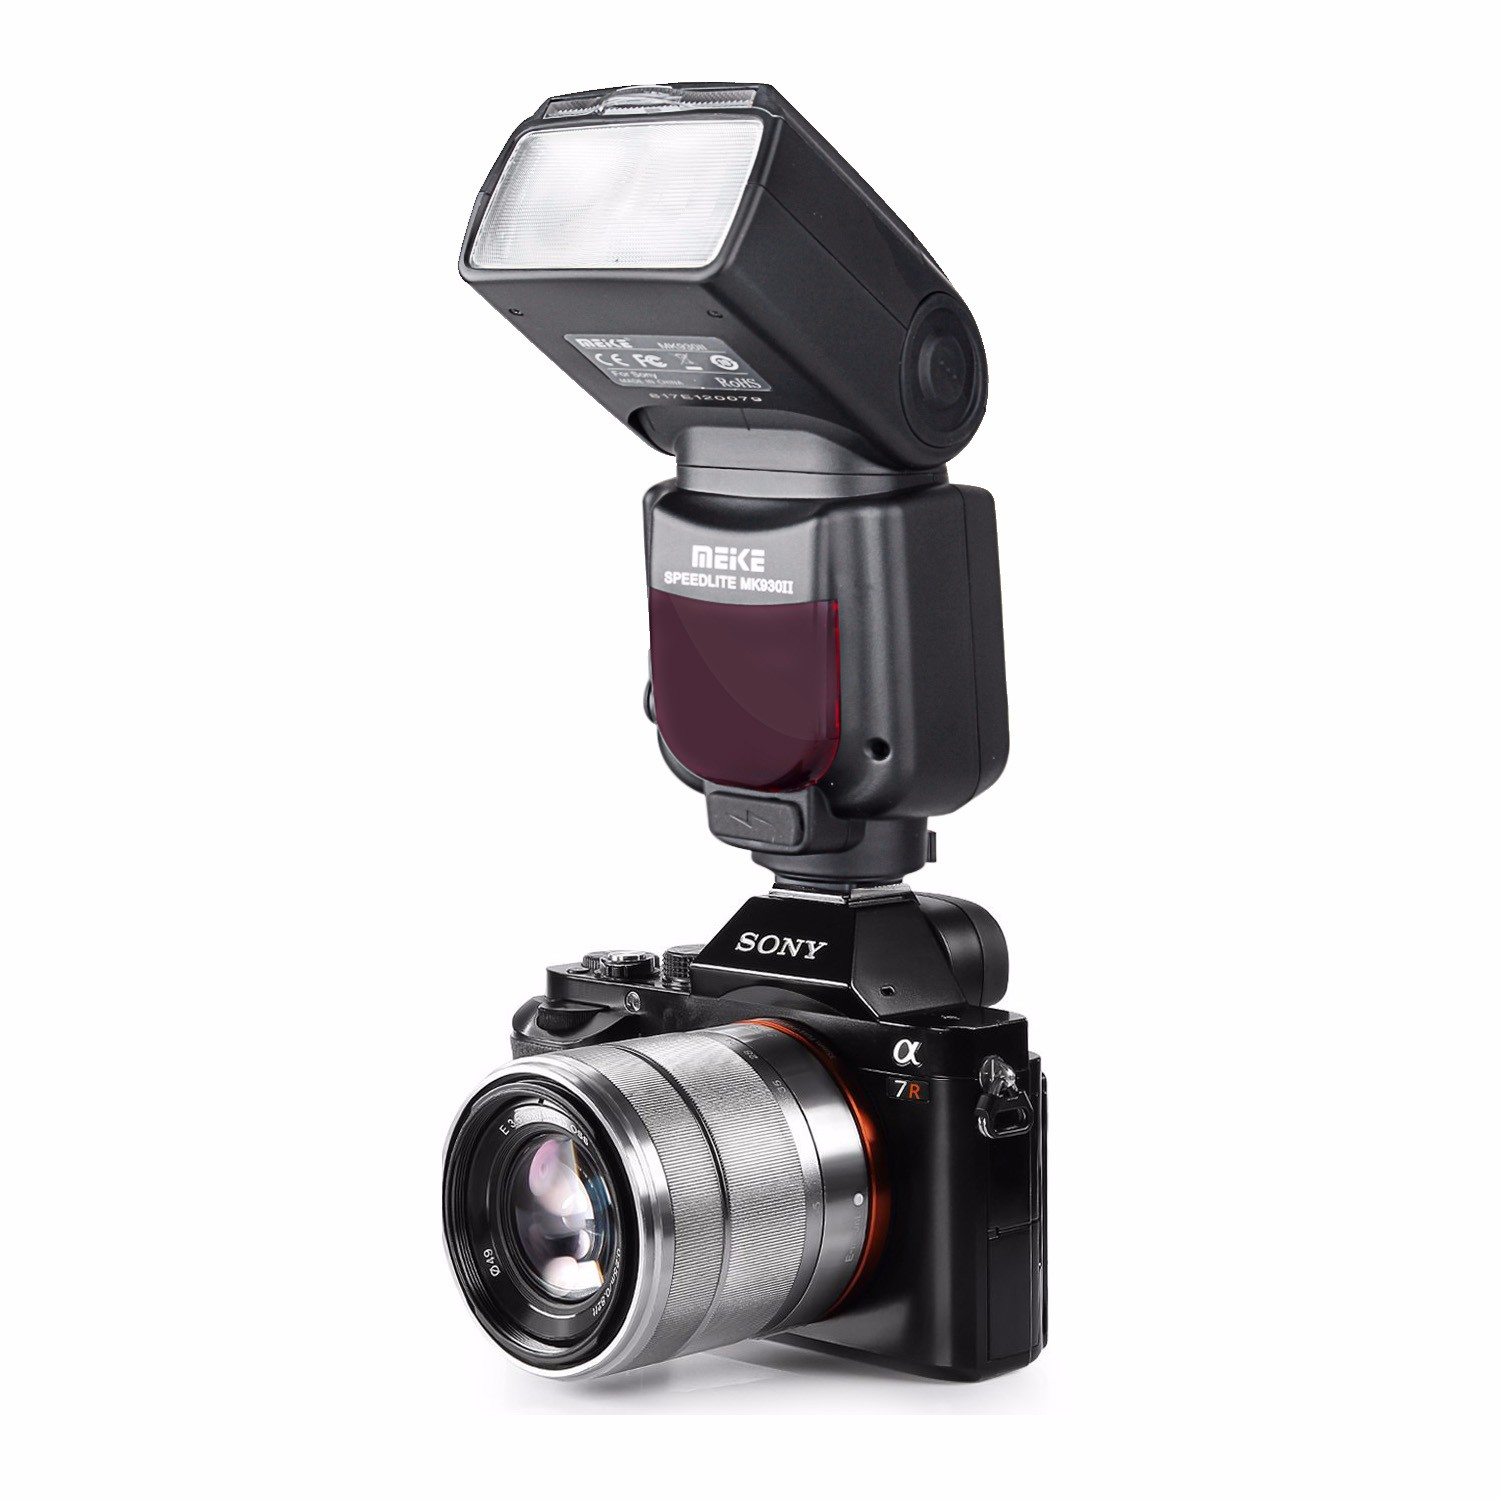 MEIKE MK-930 II LCD GN58 Flash Speedlite for Sony MI Hotshoe Camera for A7 A7R A7S A7 II A7R II A7S II A6300 A6000 godox tt600s flash speedlite for sony multi interface mi shoe cameras a7 a7s a7r a7 ii a6300 etc